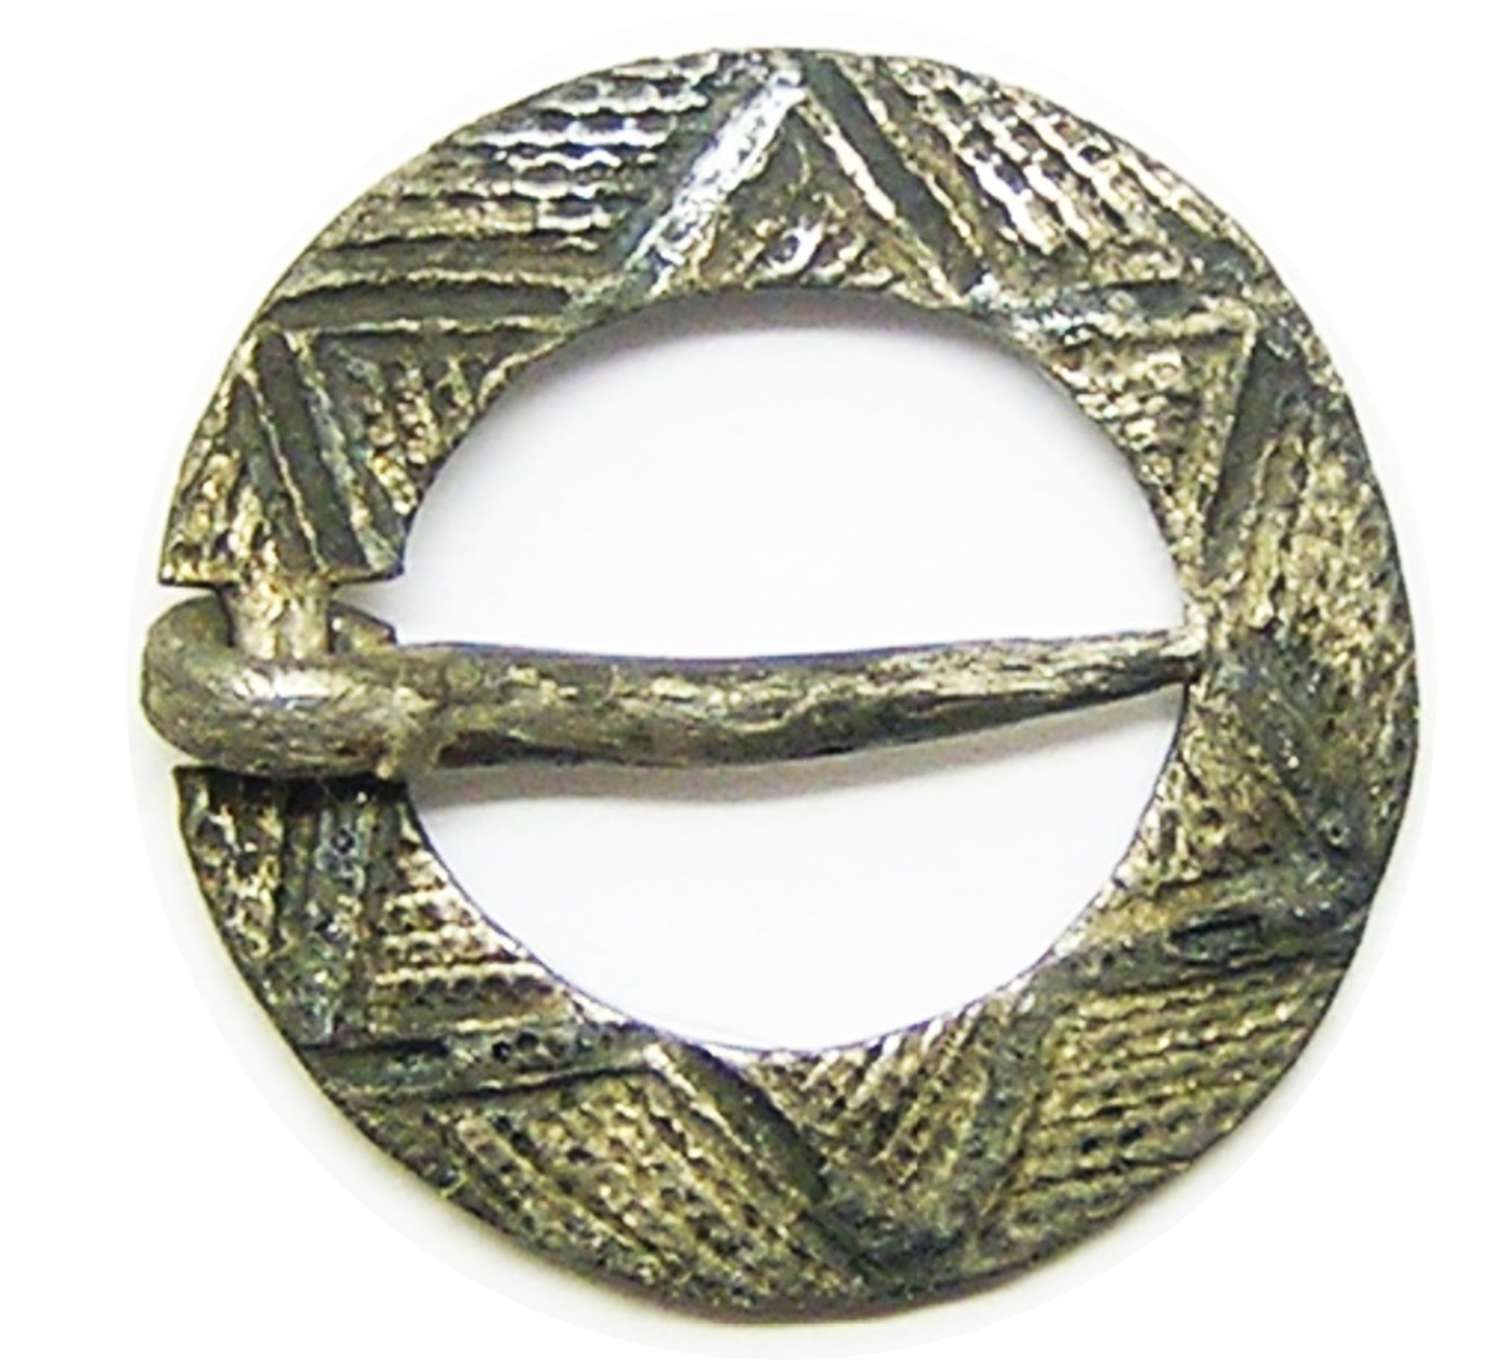 Medieval silver ring brooch decorated with six pointed star